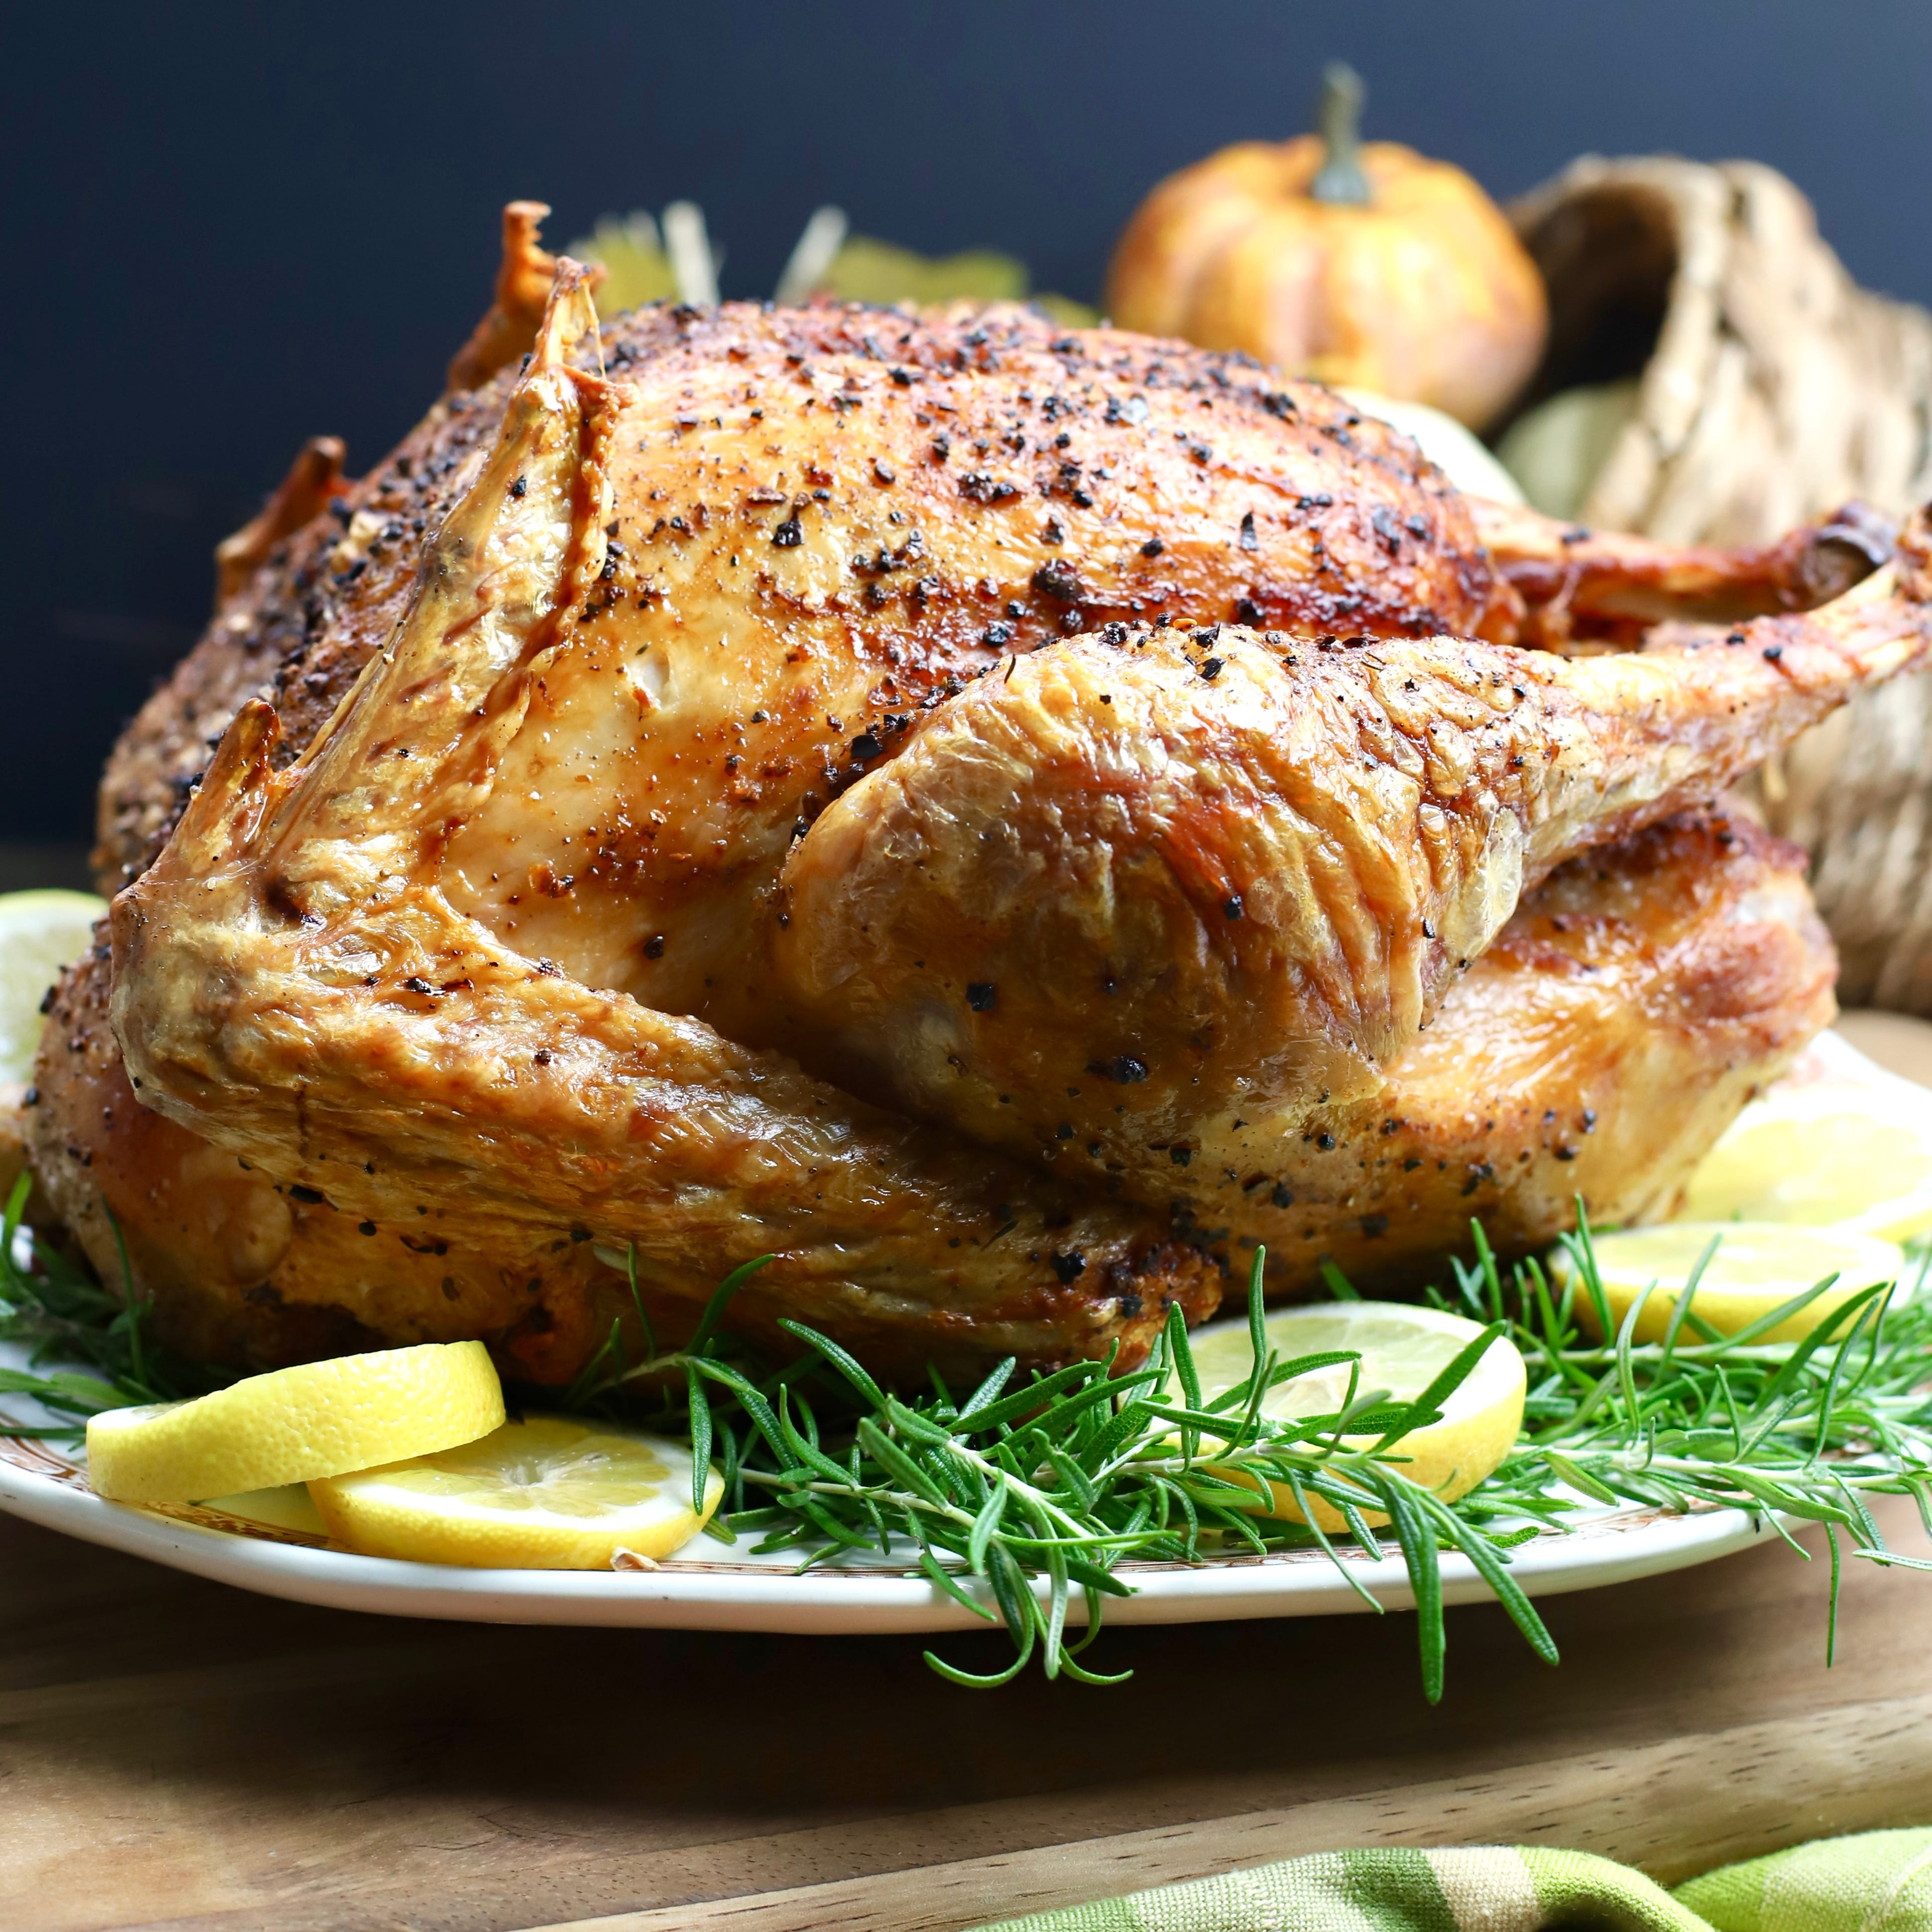 How to cook the turkey? Try a dry fry for a moist and tender Thanksgiving bird